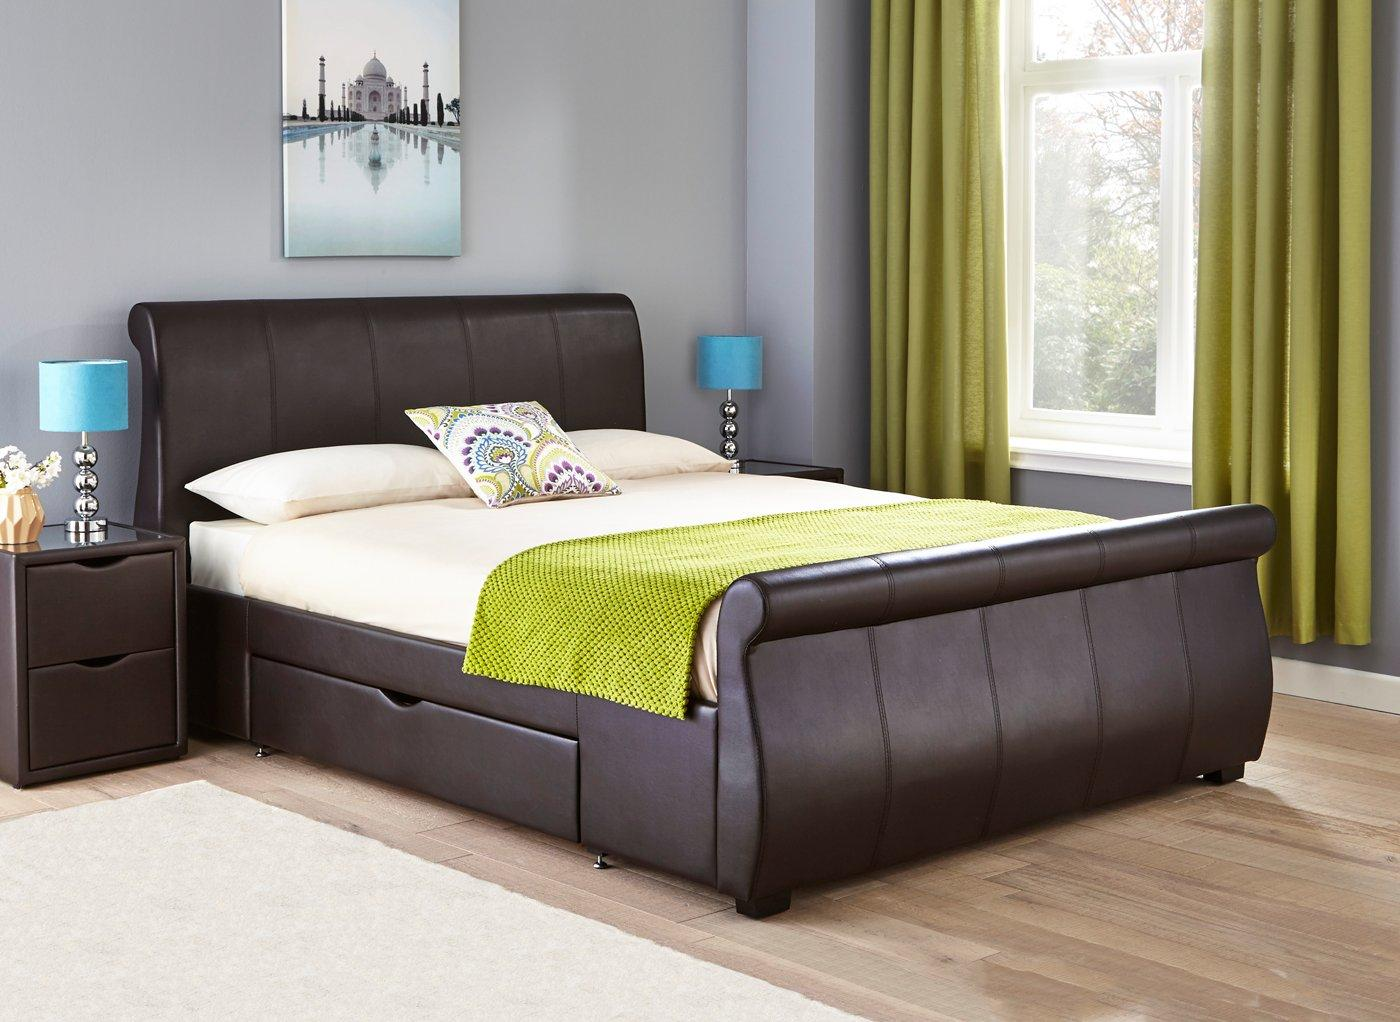 lucia-upholstered-bed-frame